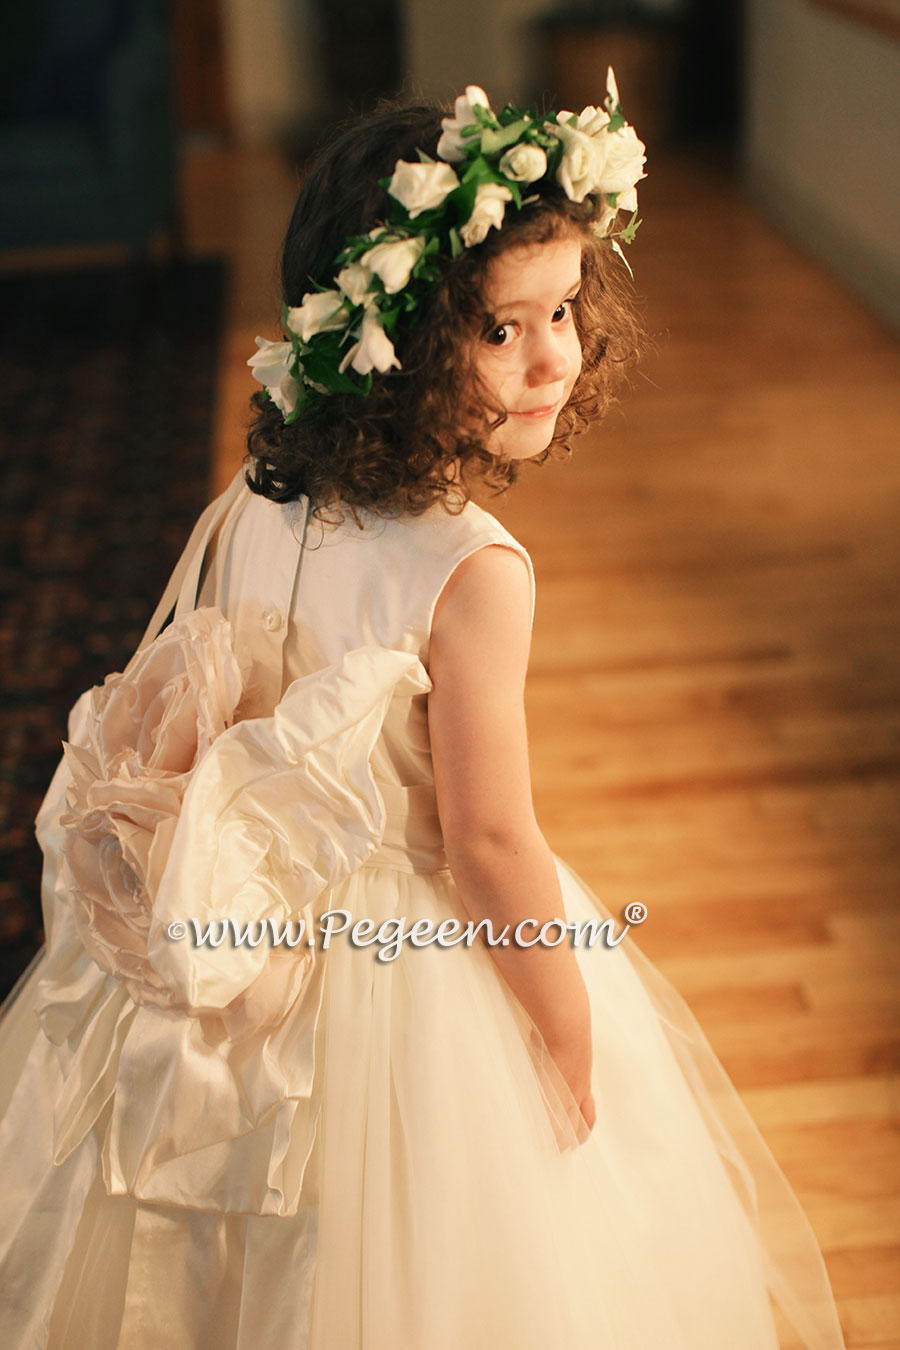 Flower Girl Dress Gallery Testimonials Pg 21 Pegeen